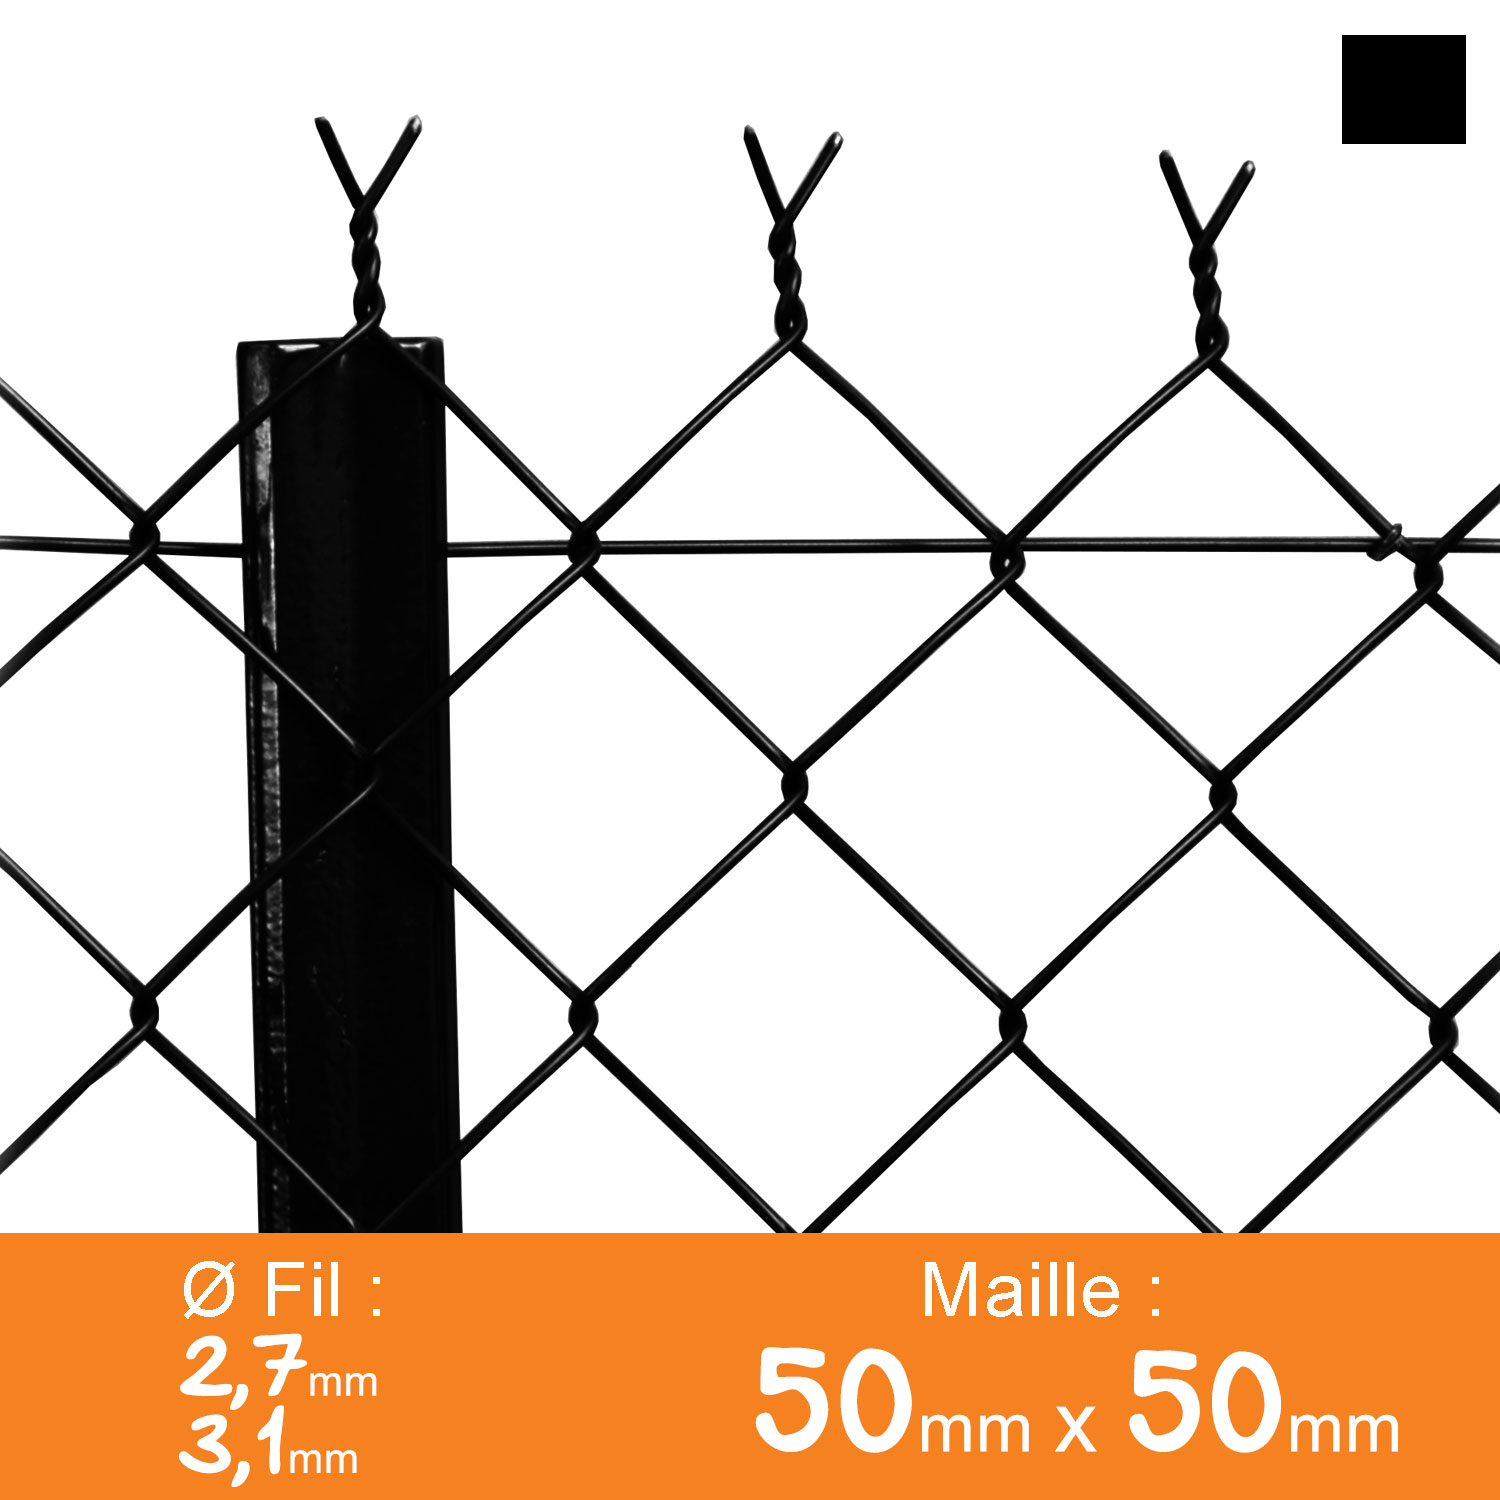 Grillage simple torsion 50 x 50 mm - Ø 2,7 / 3,1 mm - Lg. 25 m Noir